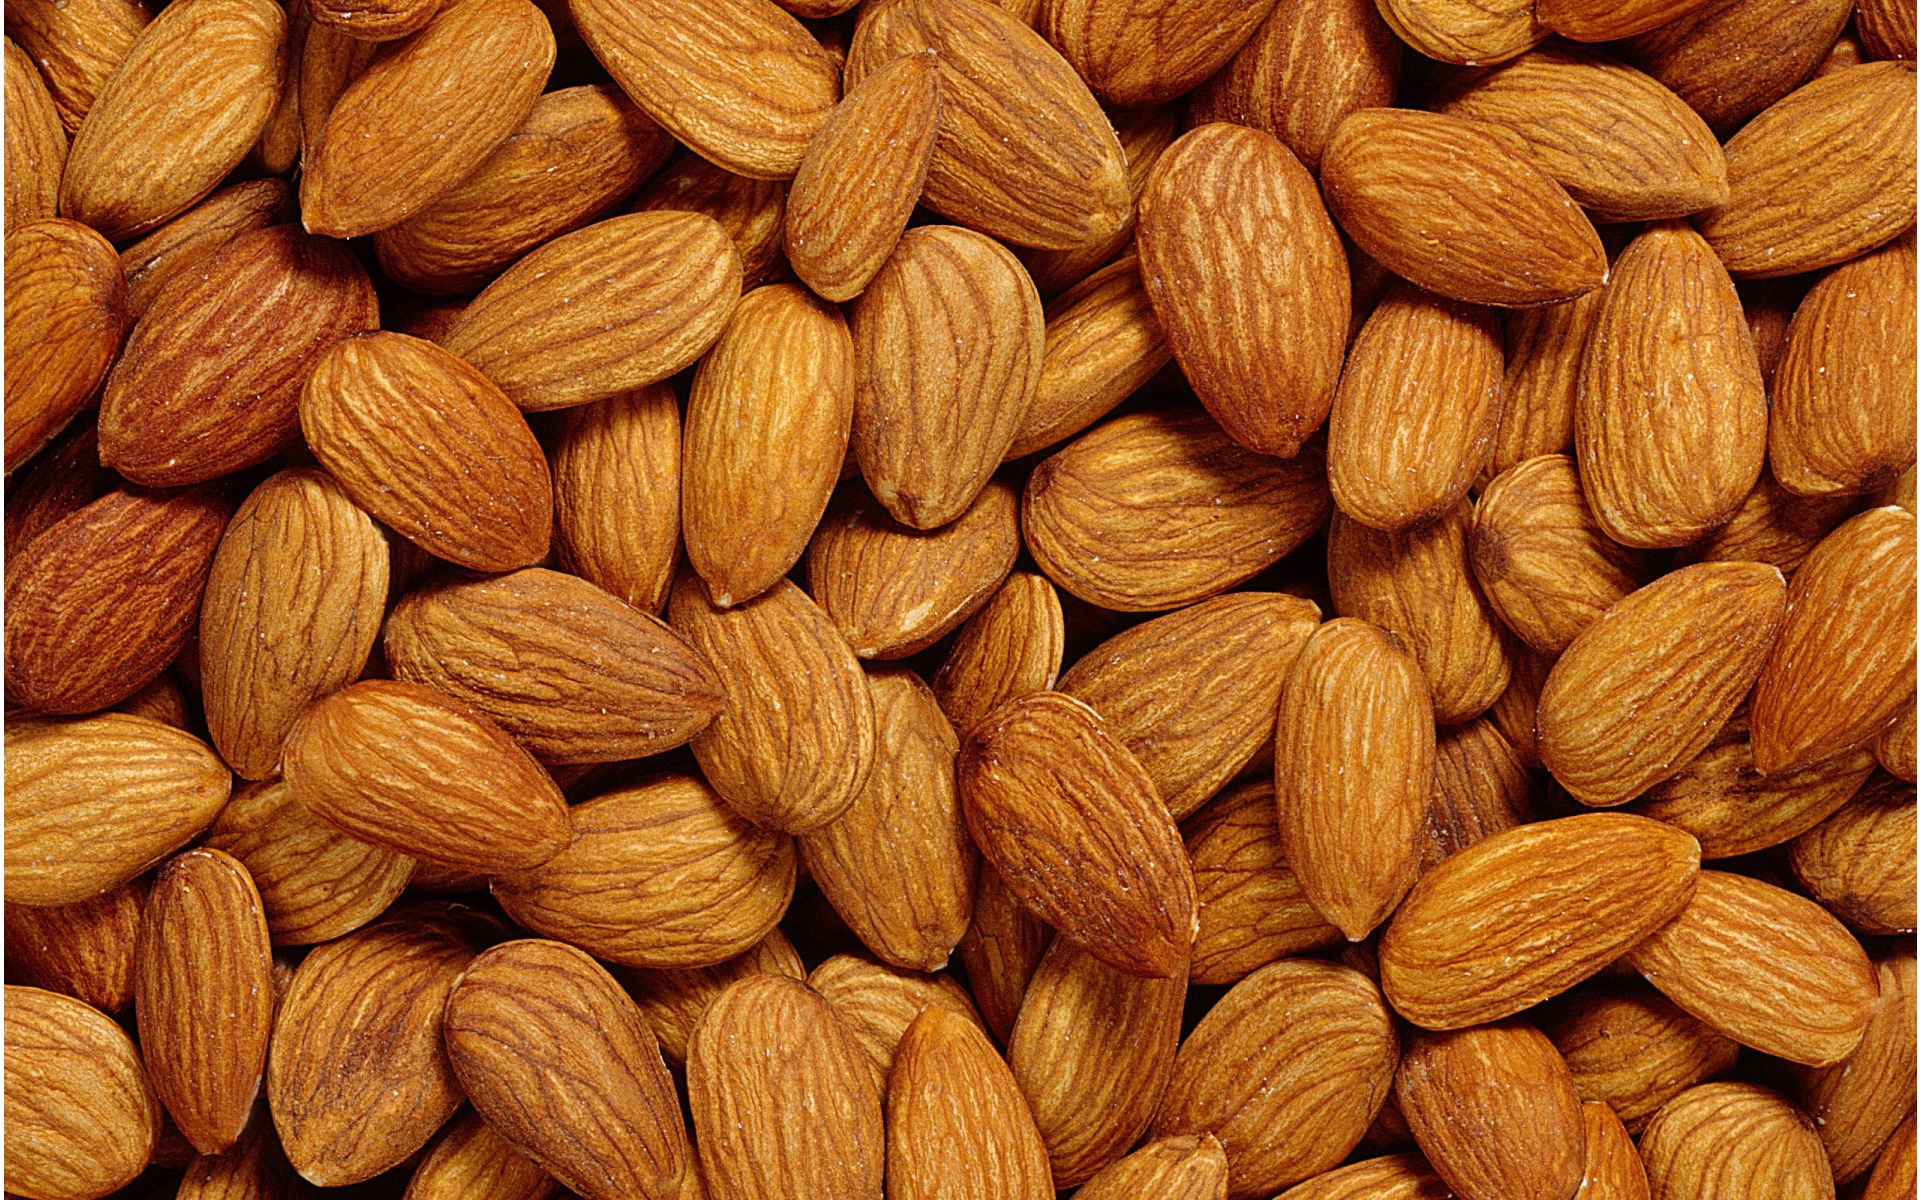 nuts almond wallpapers - 1920x1200 - 1405654